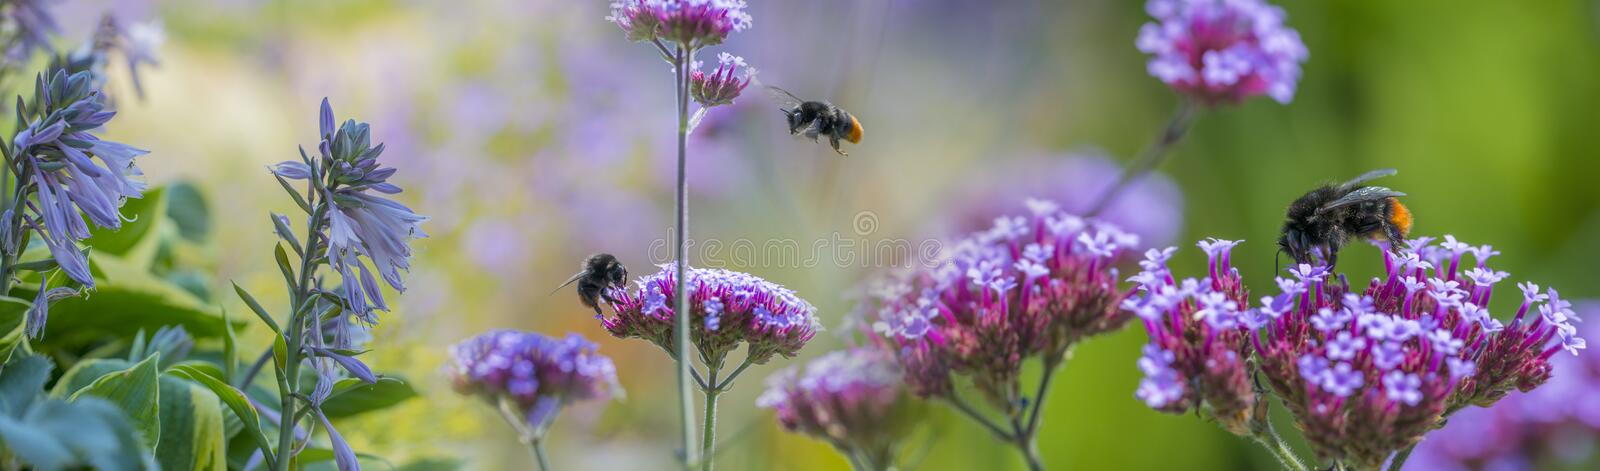 Bumblebees on flowers in the garden. Close up royalty free stock image